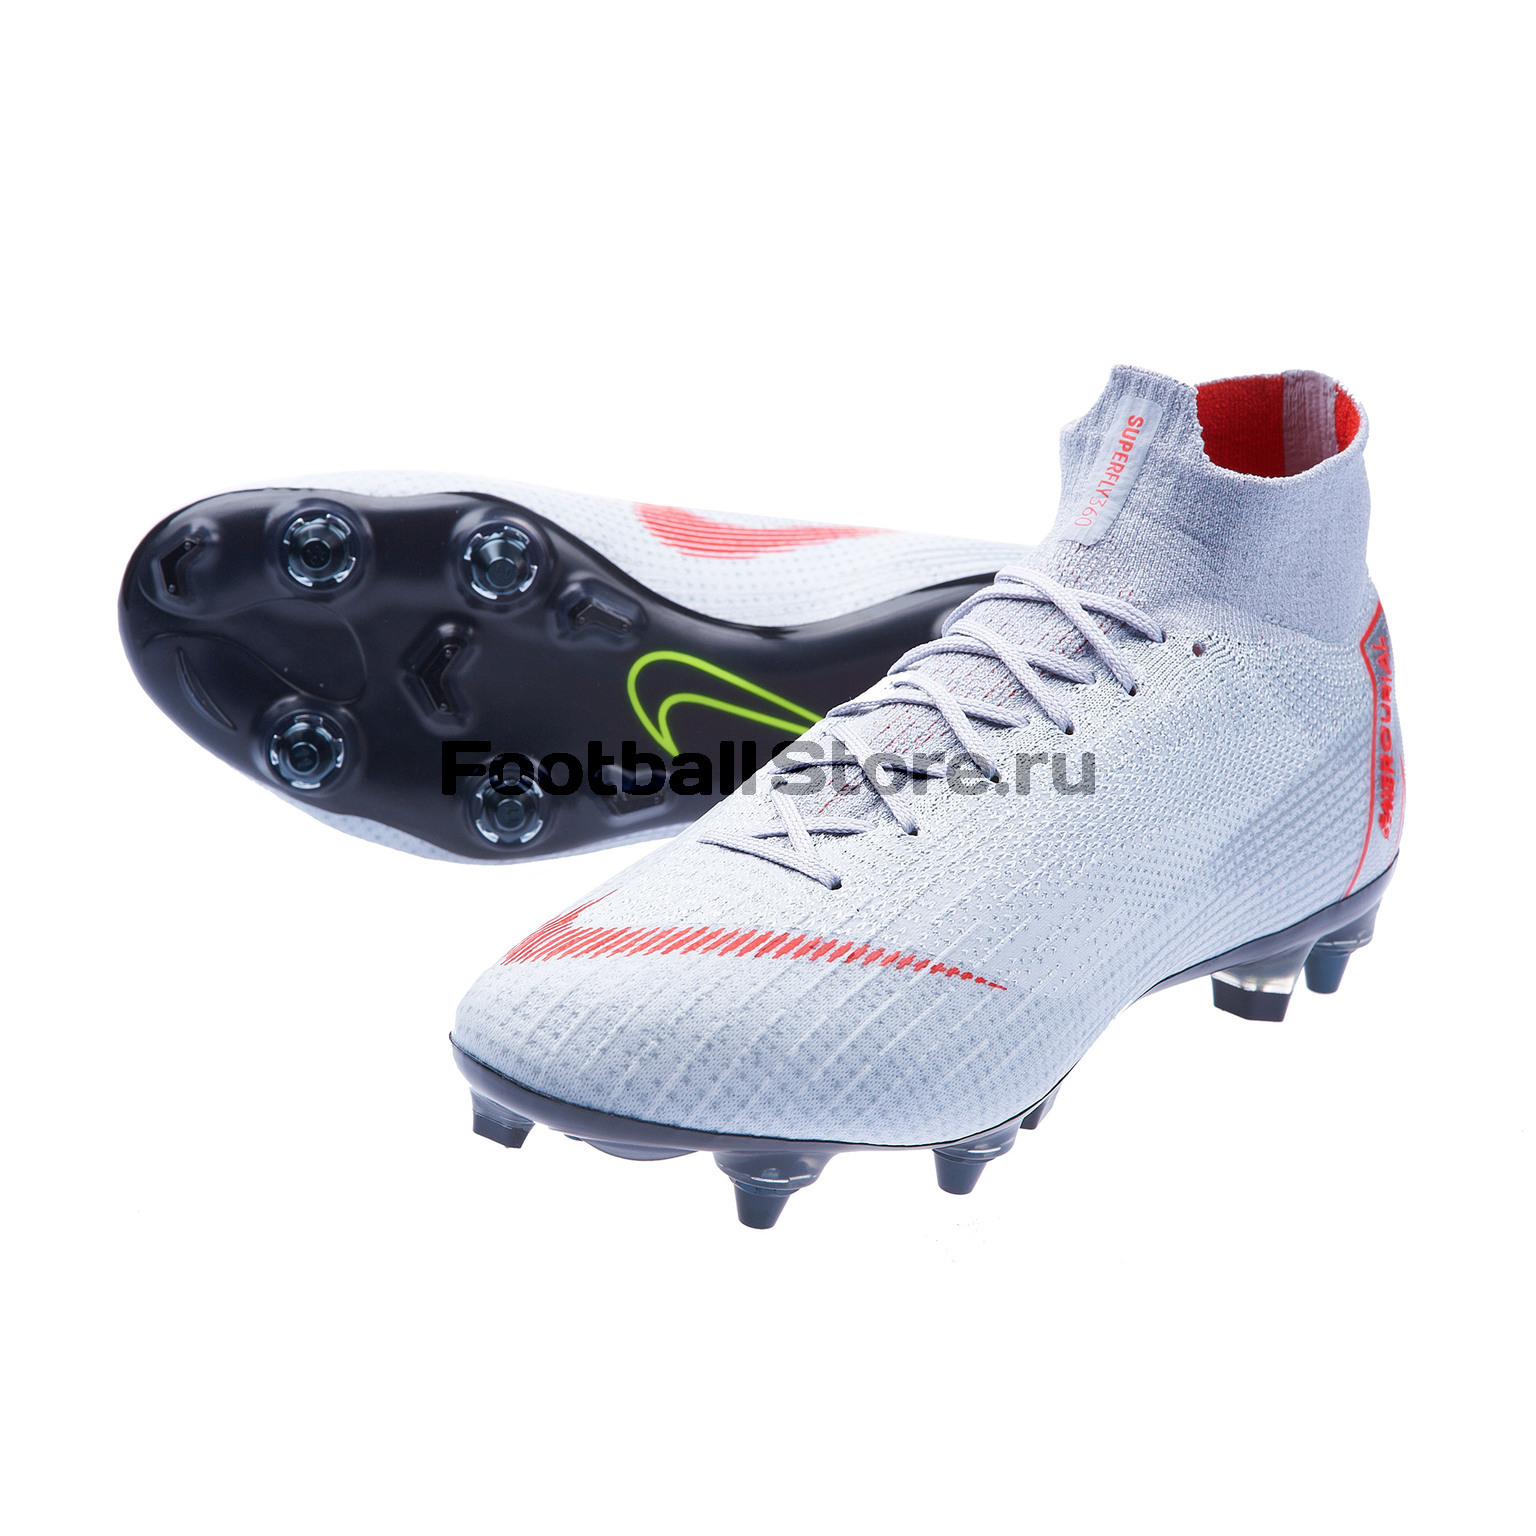 Бутсы Nike Superfly 6 Elite SG-Pro AC AH7366-060 бутсы nike superfly 6 elite fg ah7365 060